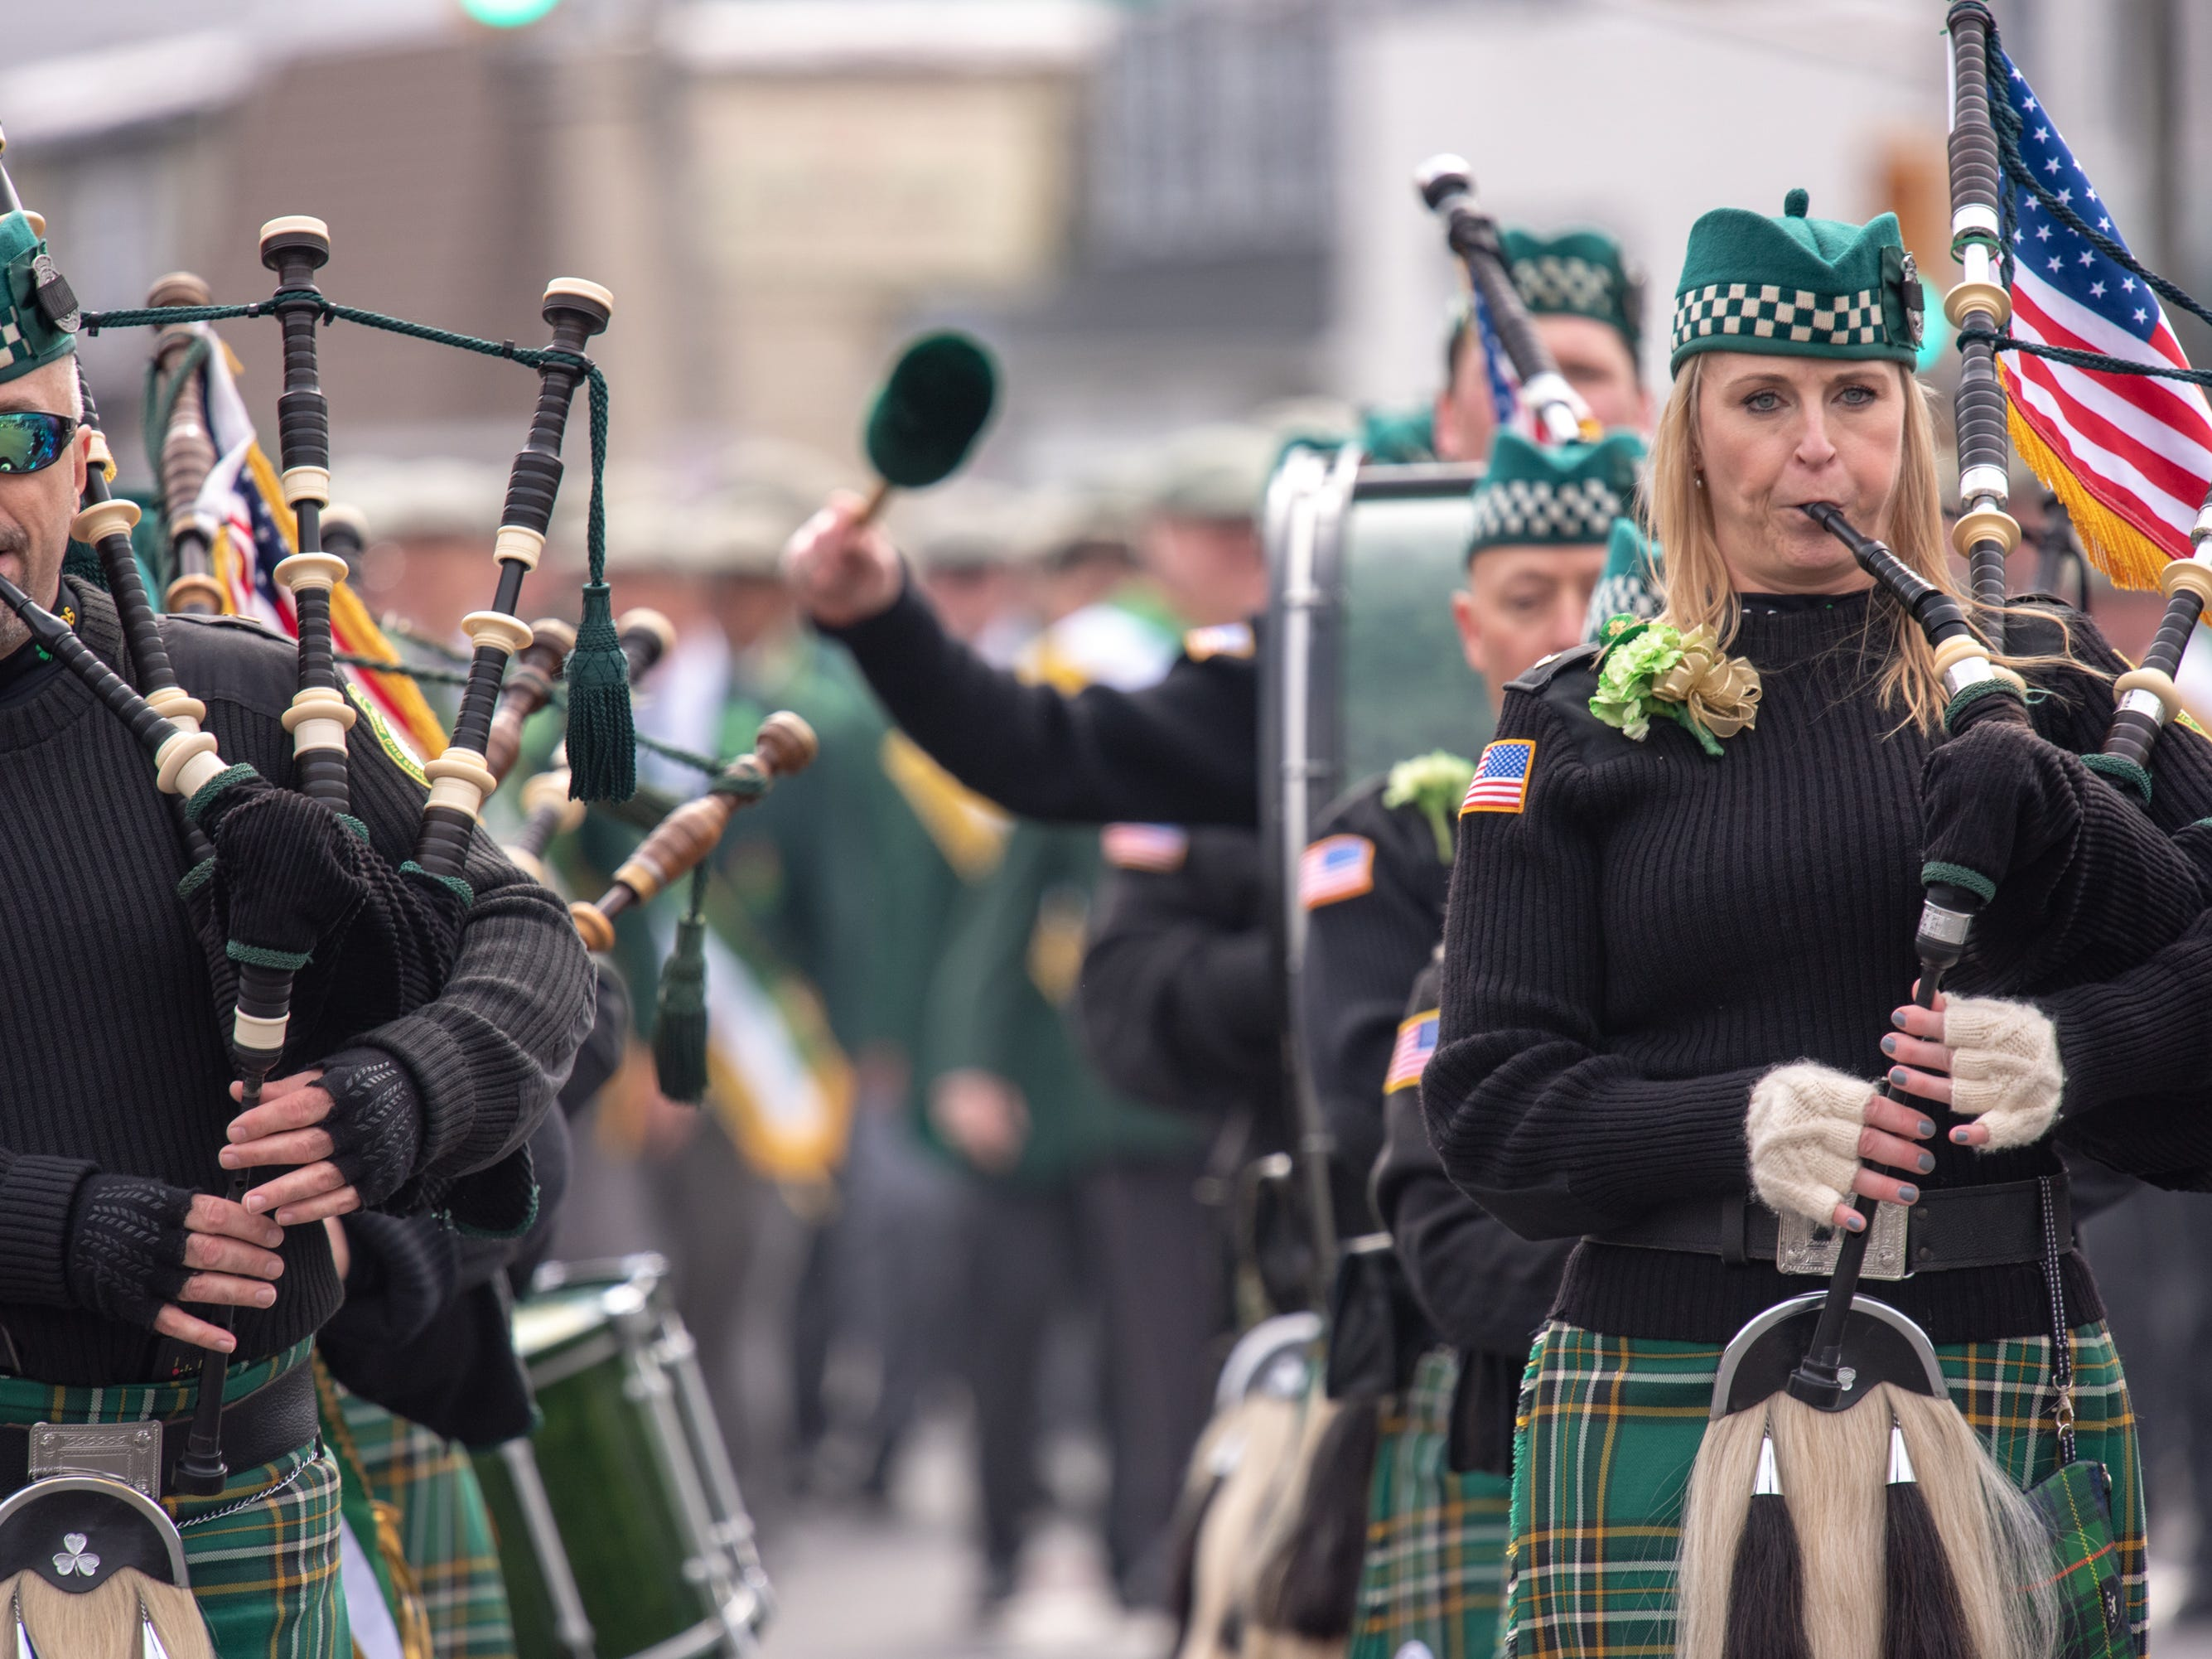 Marching are the Pipes and Drums of the  Friendly Sons of the Shillelagh of the Jersey Shore. The 46th annual Belmar/Lake Como St. Patrick's Day Parade was held in Belmar on March 3, 2019.